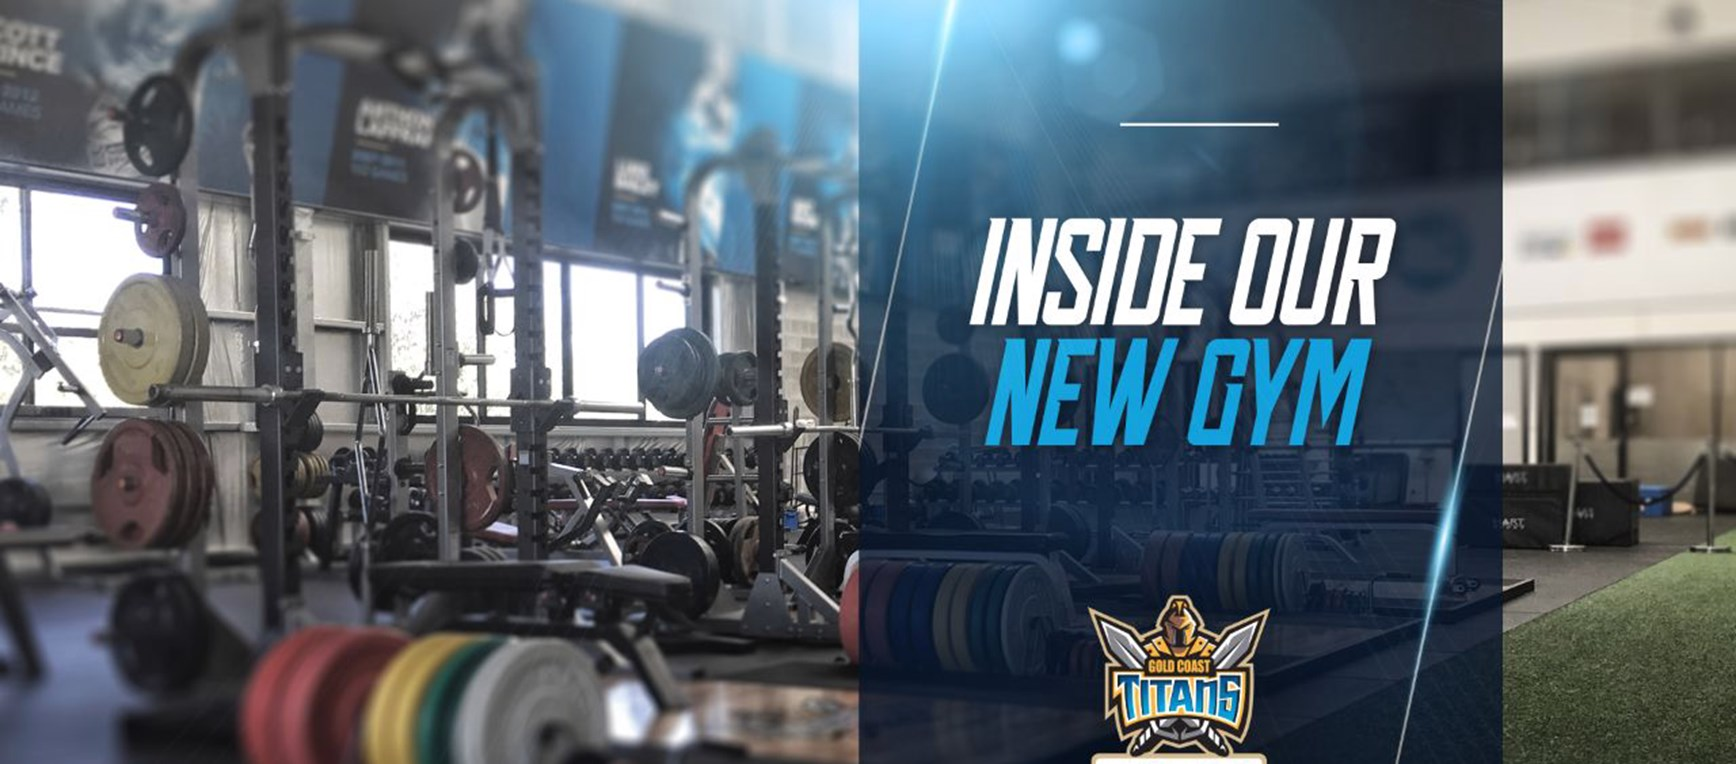 SNEAK PEEK: Take a look inside our new Gym